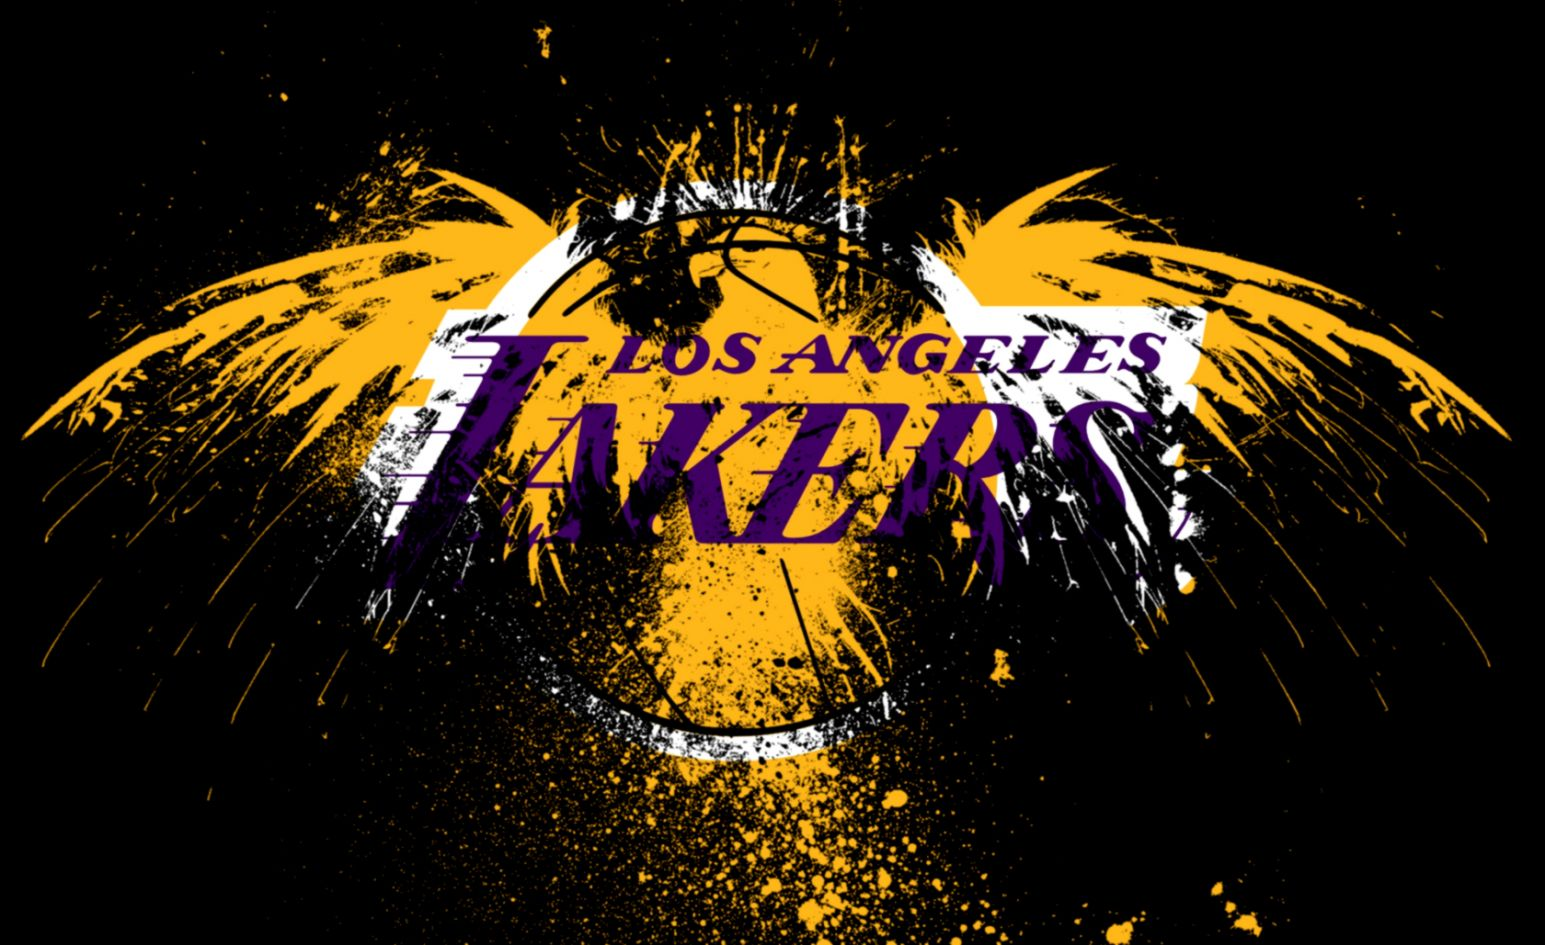 Lakers Wallpaper for Iphone 1680x1050PX  La Lakers Black